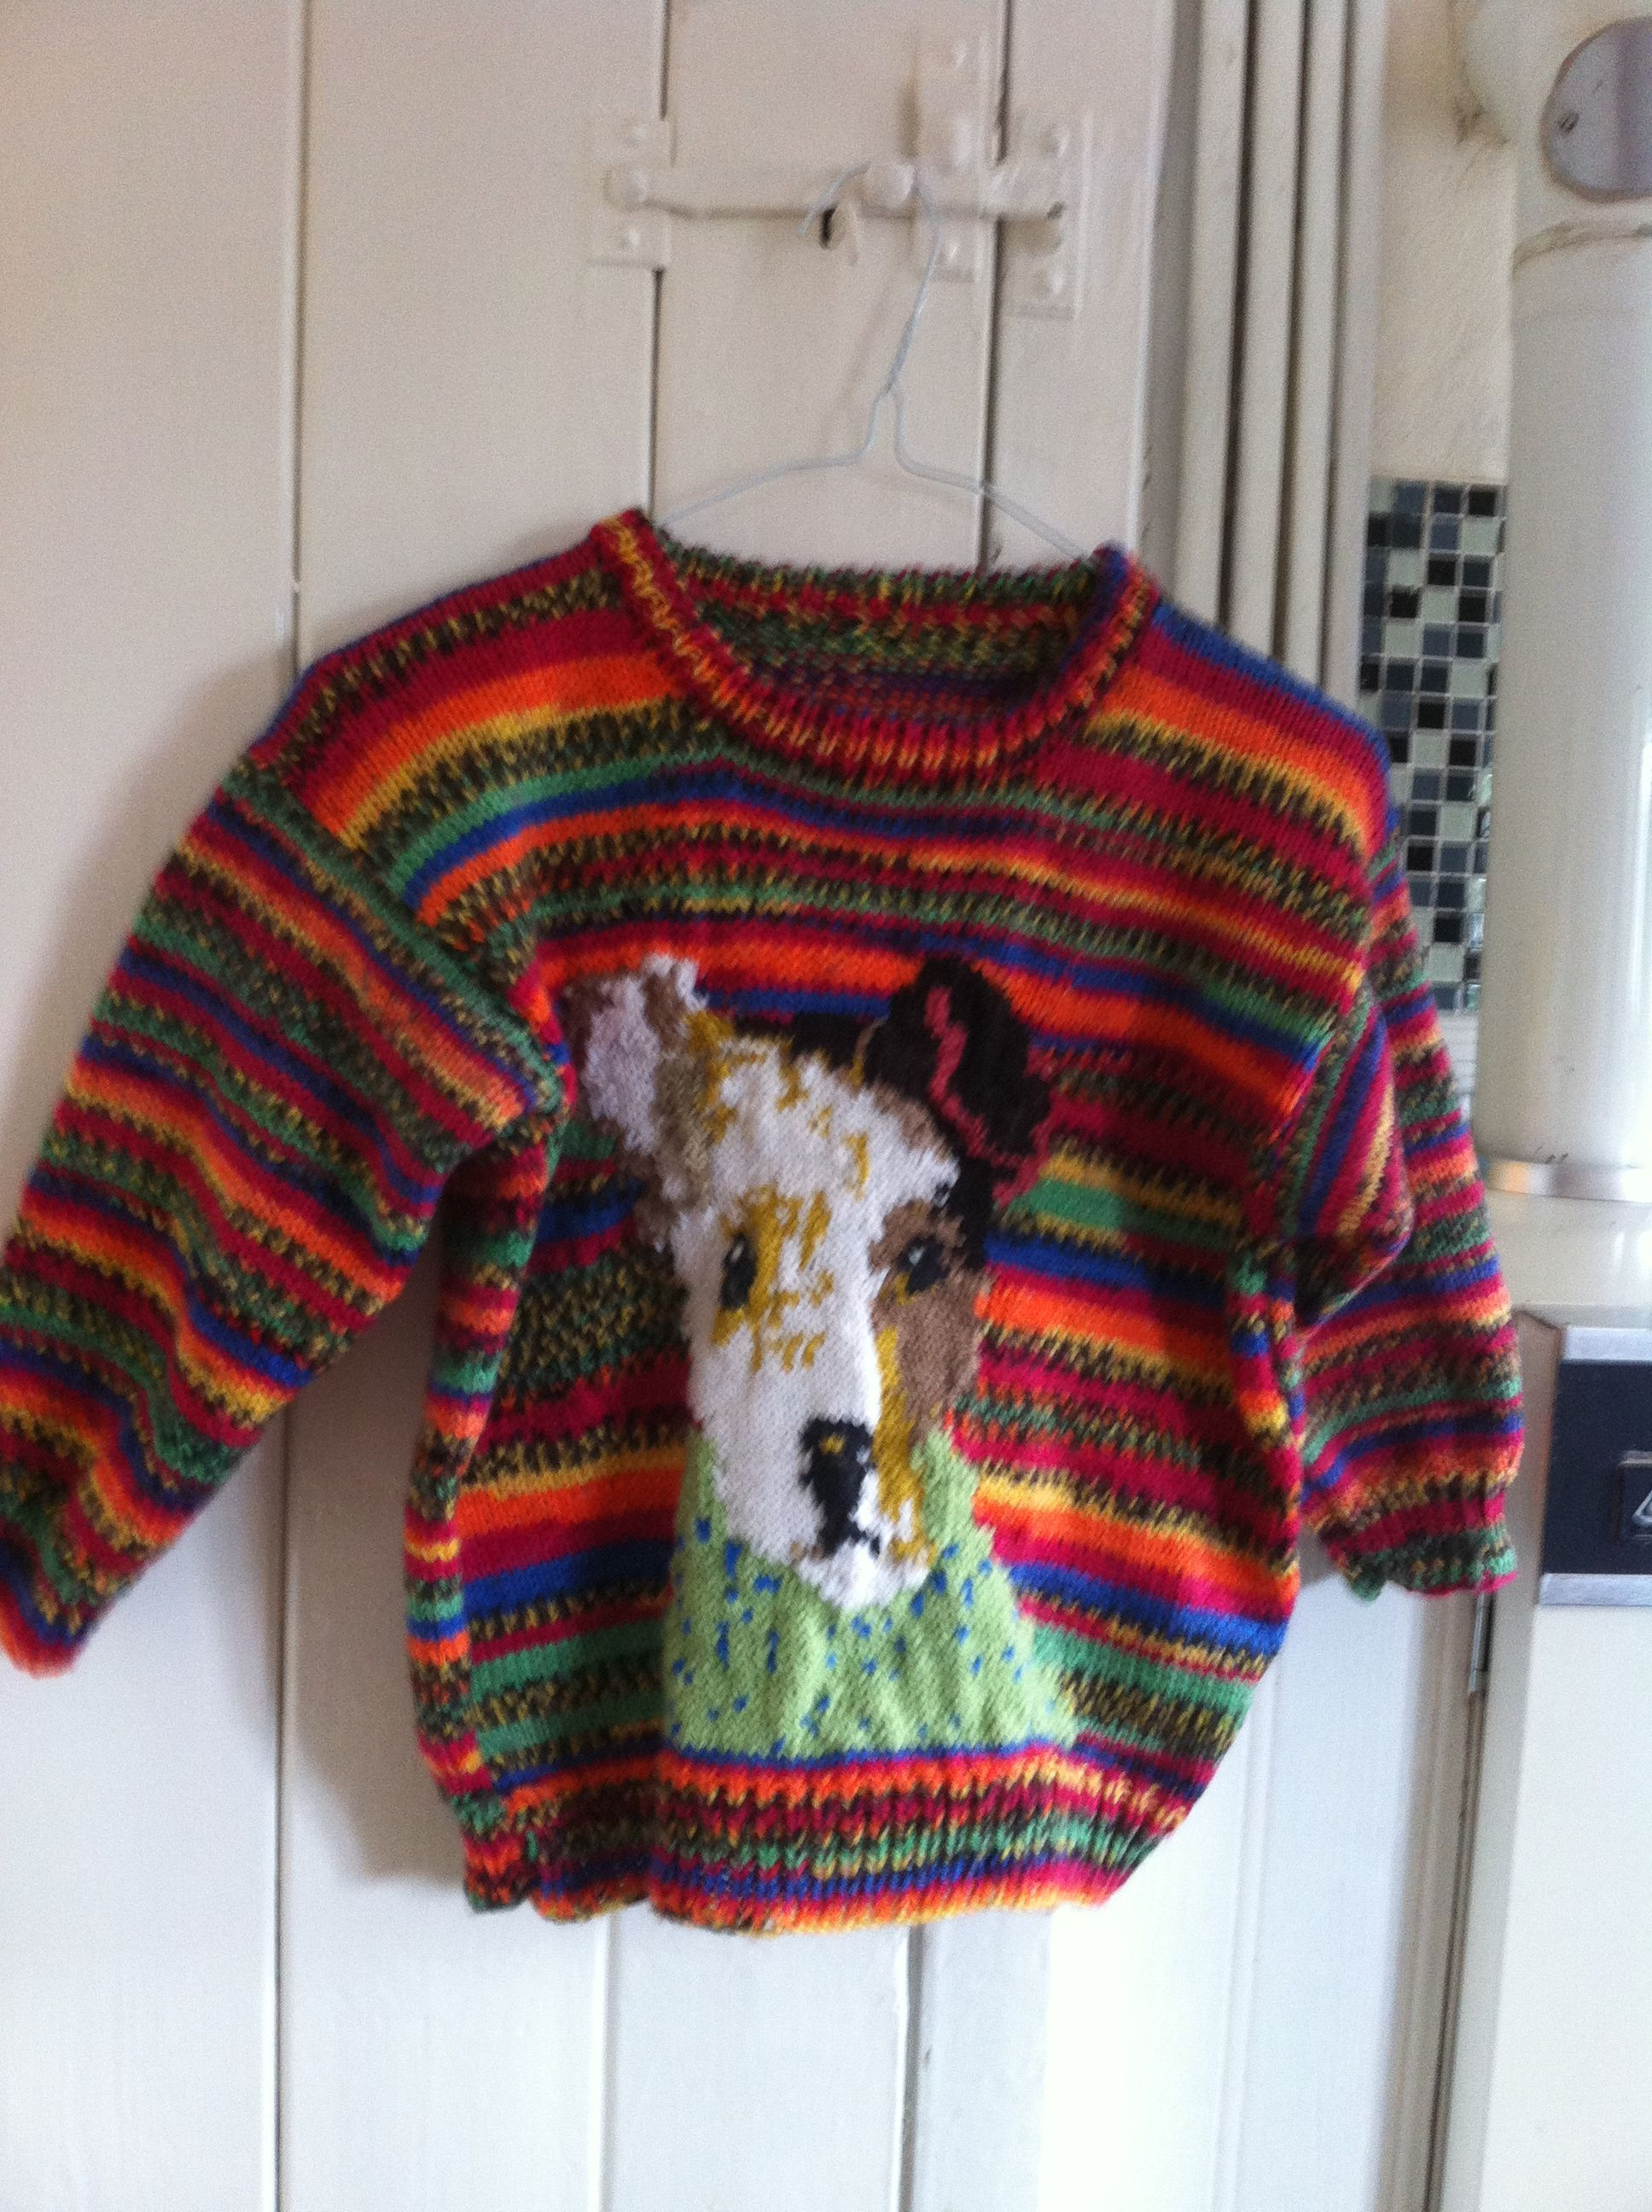 A Rainbow Jumper That I Knitted For My Grandson It Has A Picture Of A